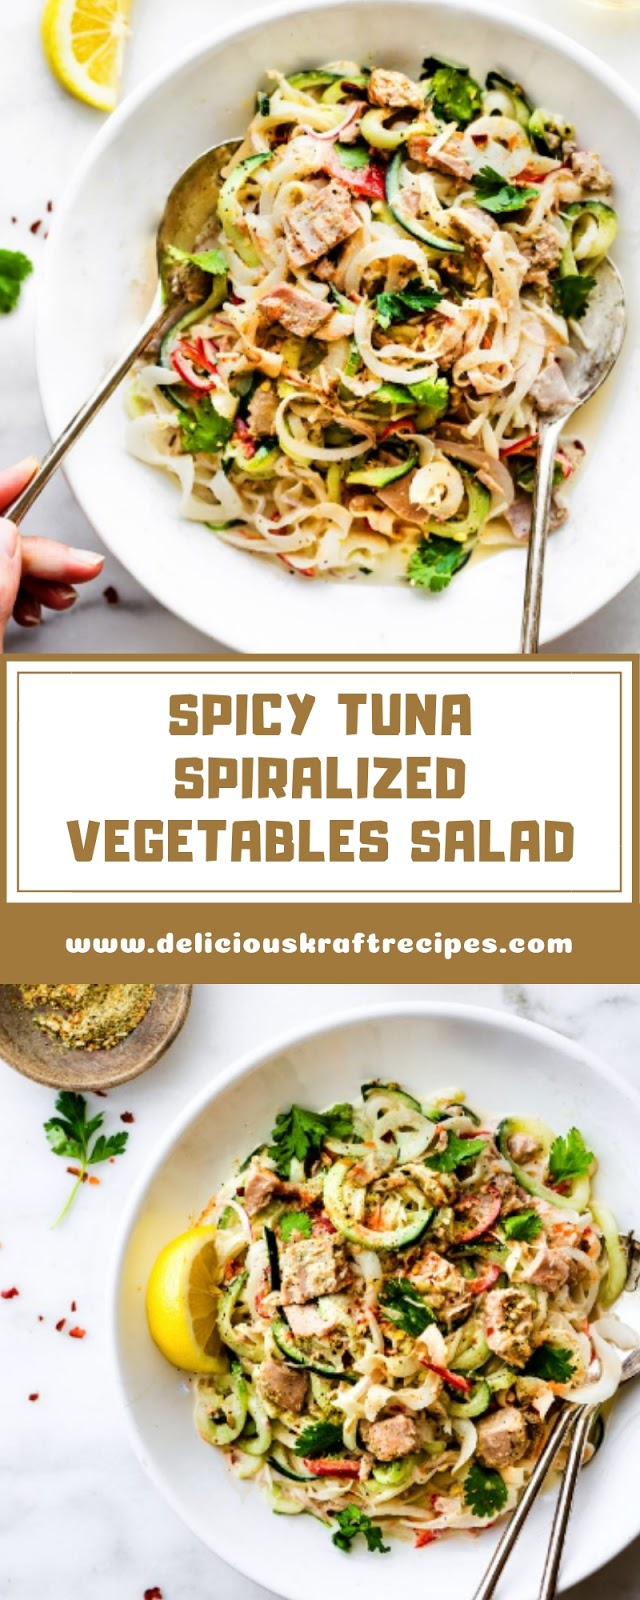 SPICY TUNA SPIRALIZED VEGETABLES SALAD